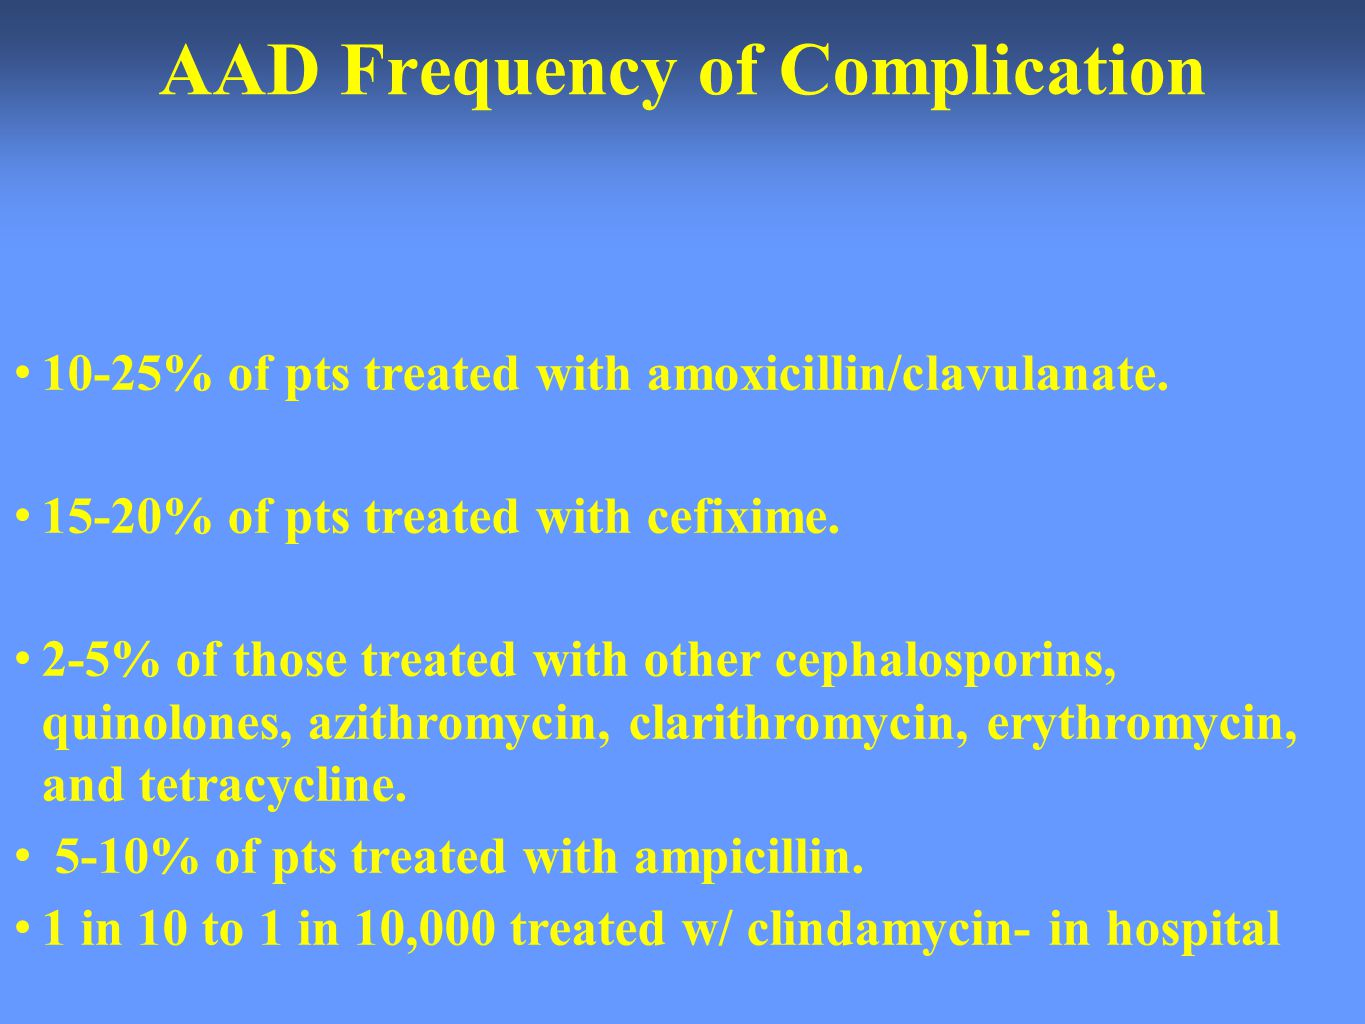 AAD Frequency of Complication